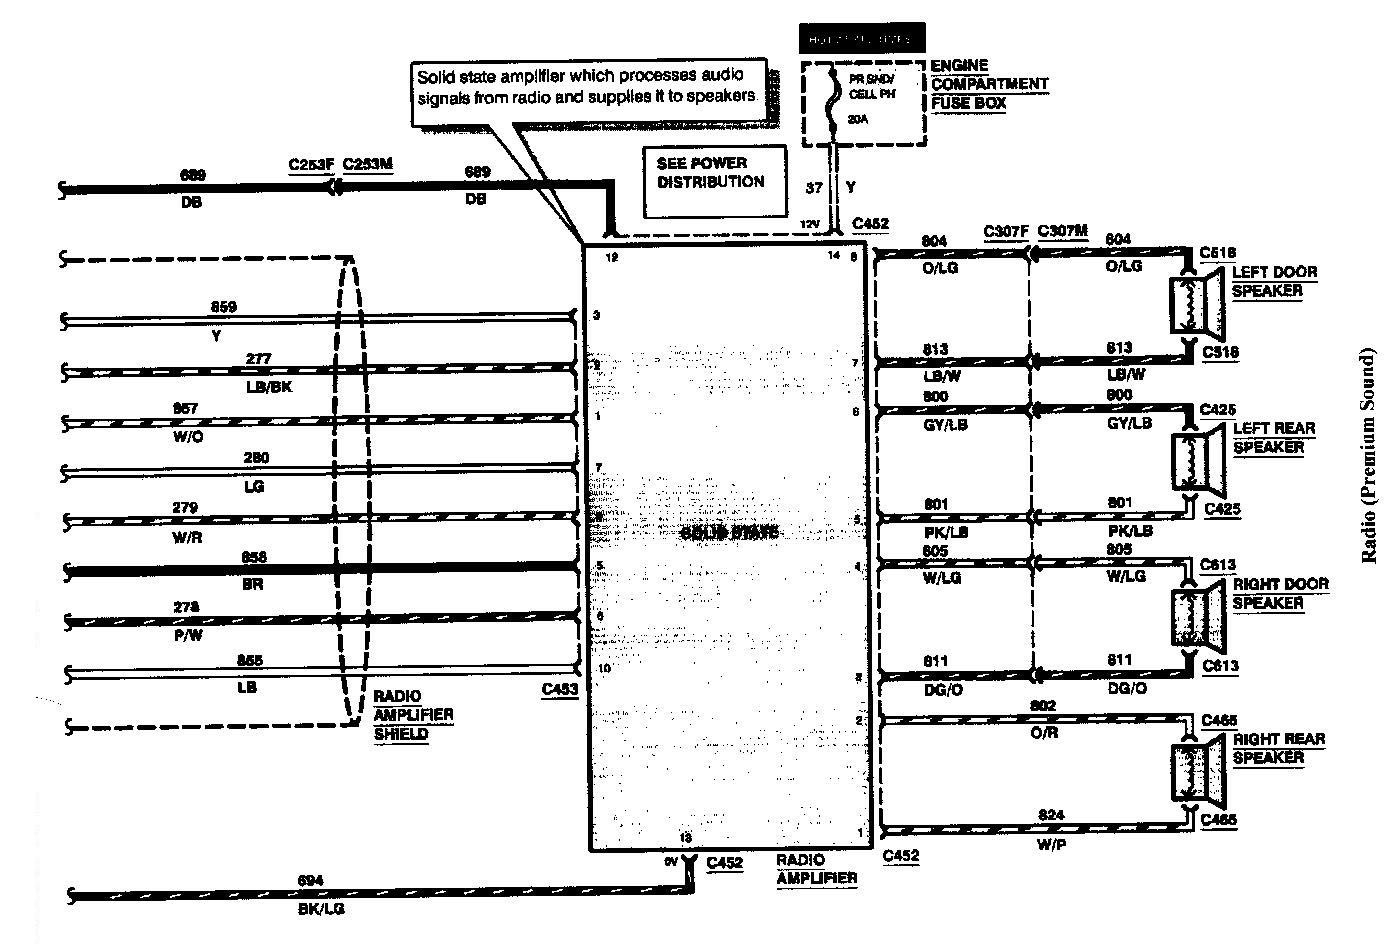 lincoln town car radio wiring diagram Download-1997 lincoln town car wiring diagram circuit connection diagram u2022 rh wiringdiagraminc today 1989 Lincoln Town Car Wiring Diagram 1989 Lincoln Town Car 5-q